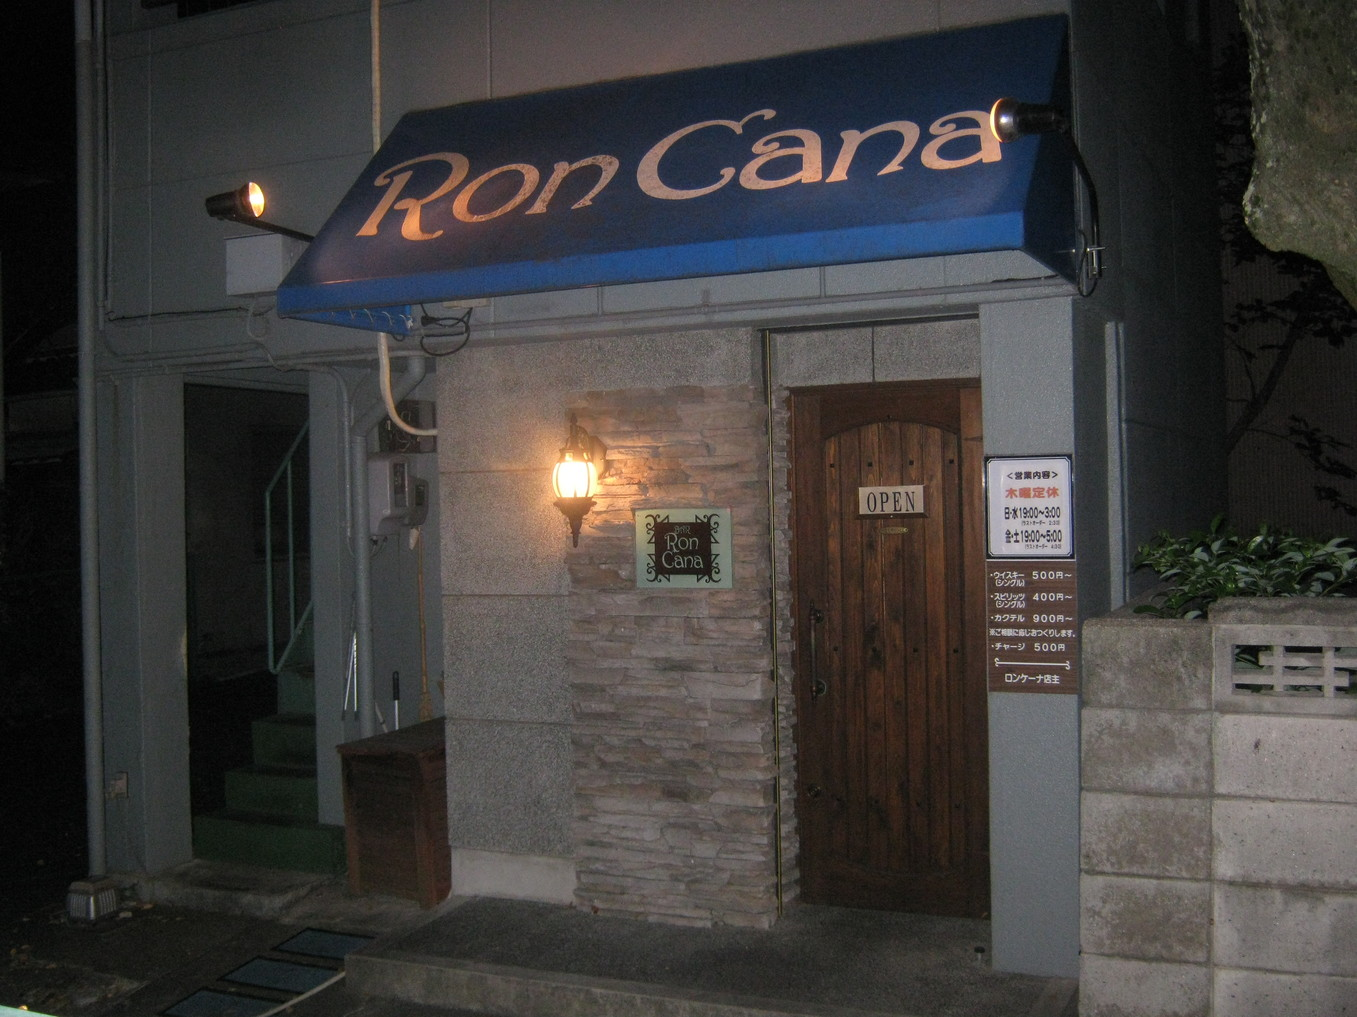 BAR RON CANA